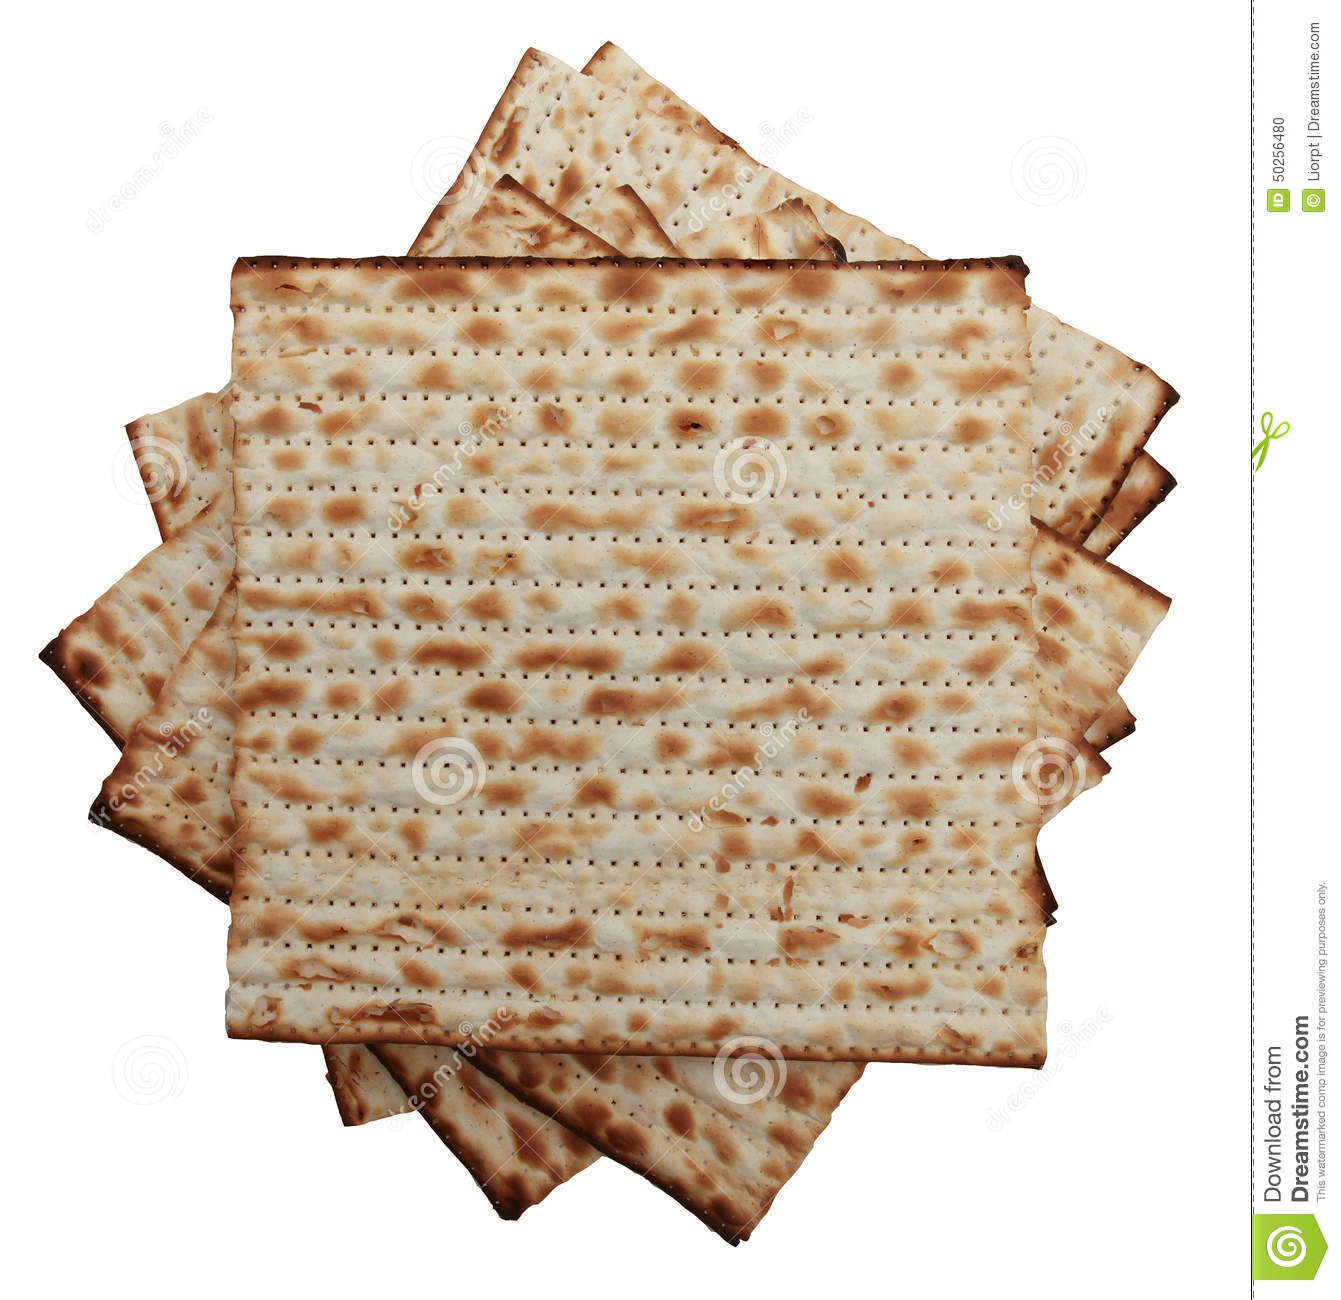 passover judaism Passover is more than just a holiday of redemption and retelling the exodus celebrate a meaningful holiday by diving deeper behind the true meaning of passover.